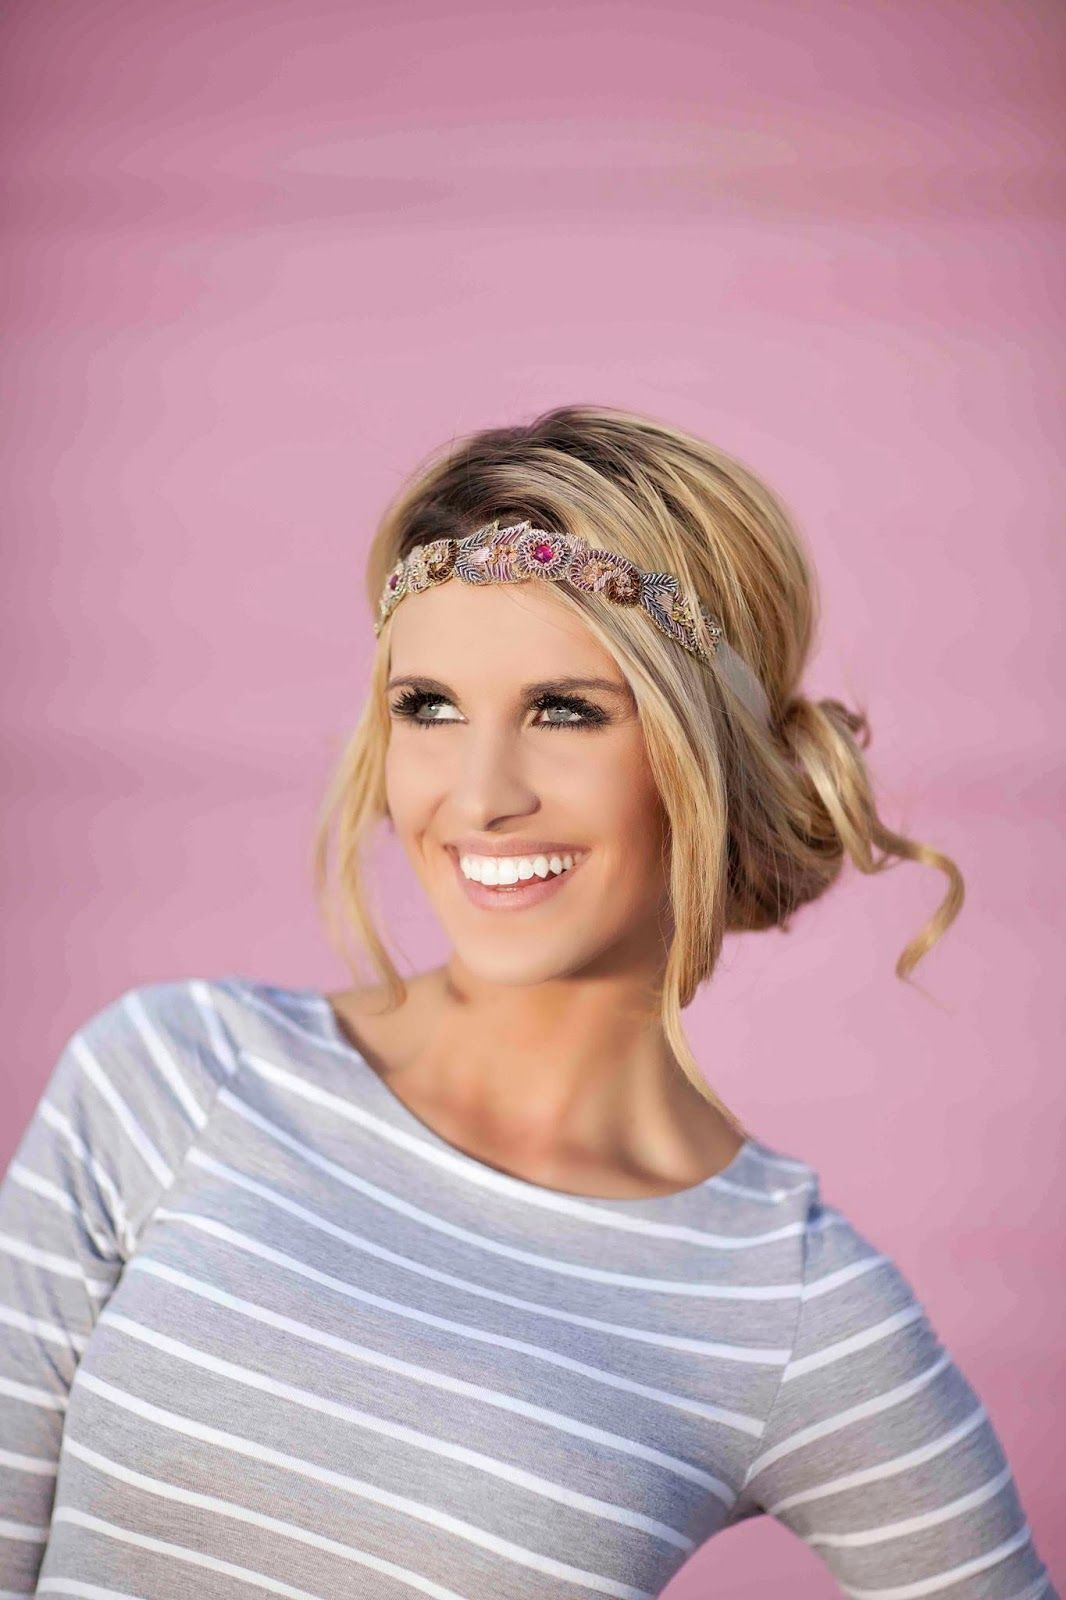 how to wear headbands comfortably